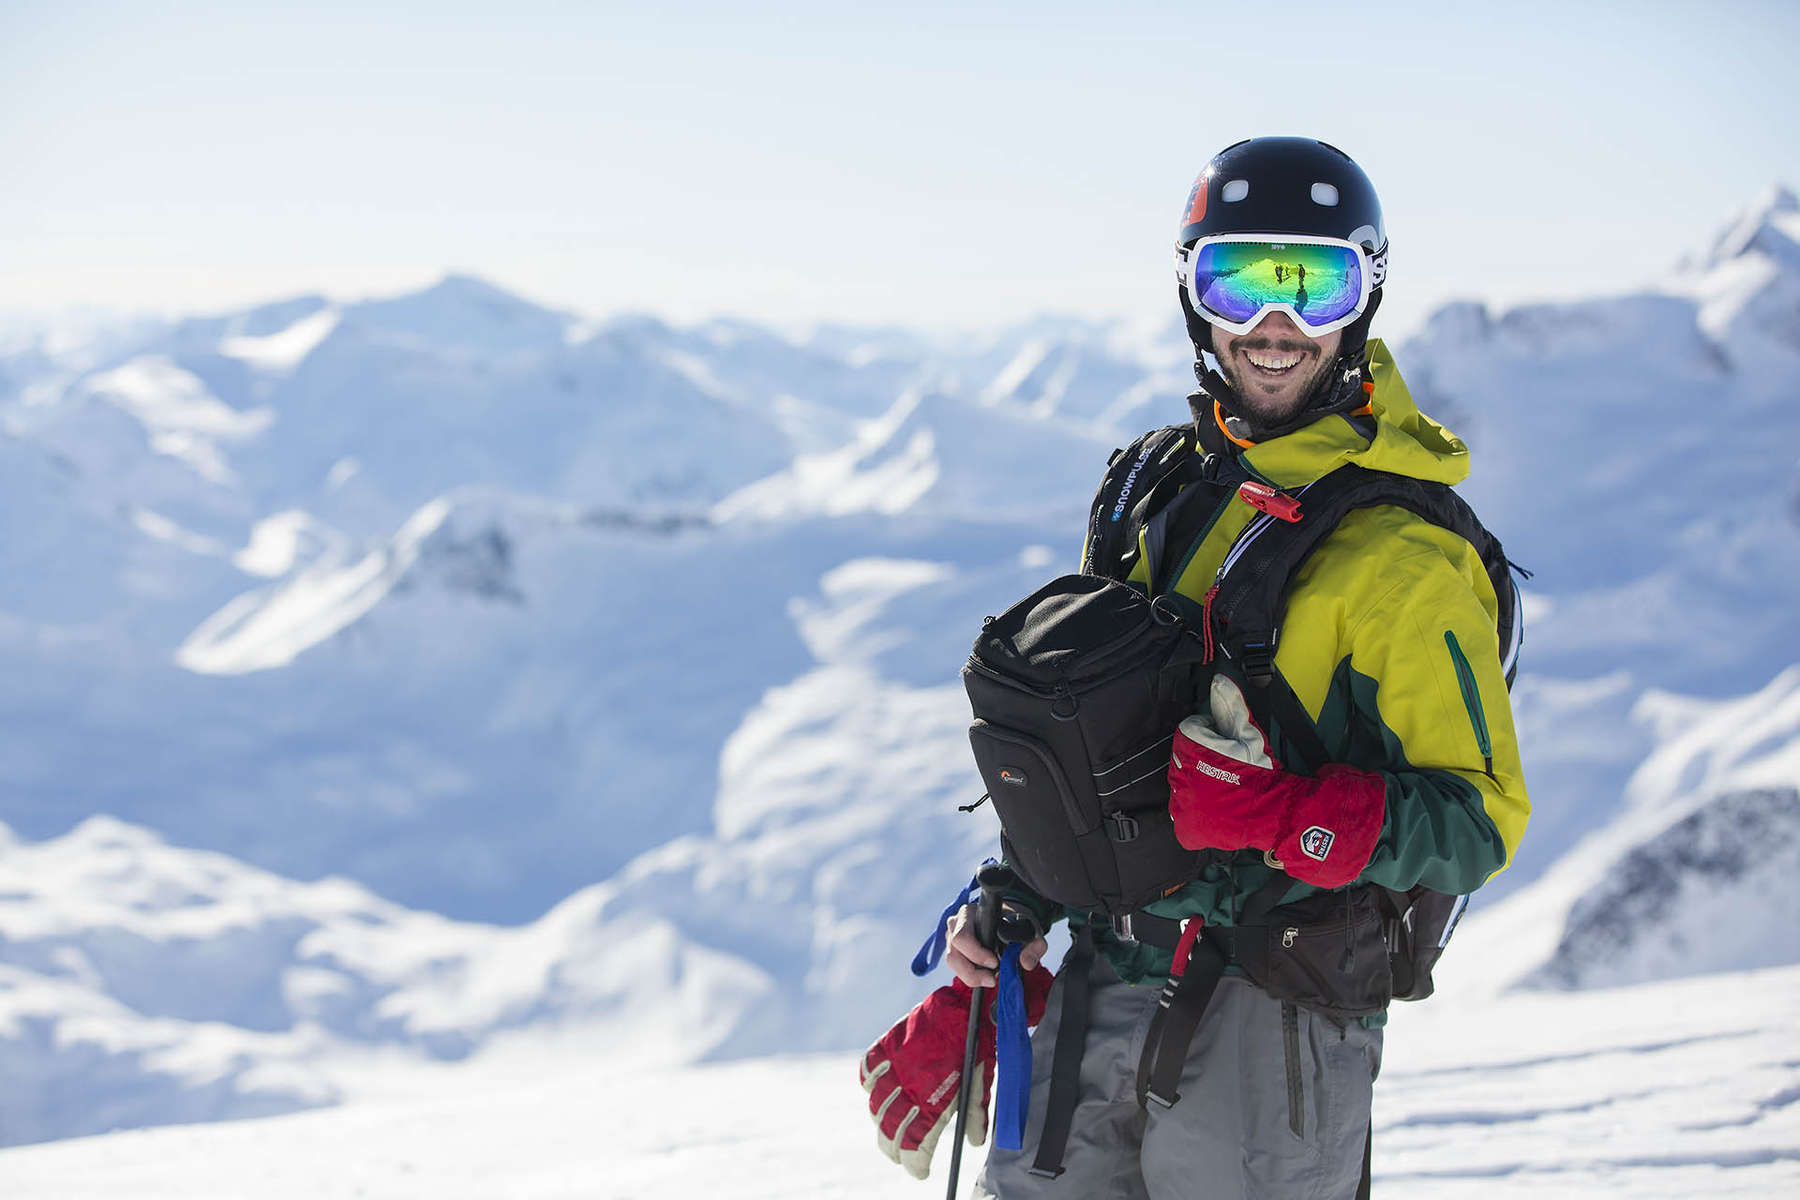 Photographer Aaron Whitfield has over 10 years of professional ski photography experience. The first six years, were spent capturing the guest experience at world reknown Island Lake Cat-Skiing. Since 2012, he has worked in the coast mountains of northwestern British Columbia with Northern Escape Heli-skiing.